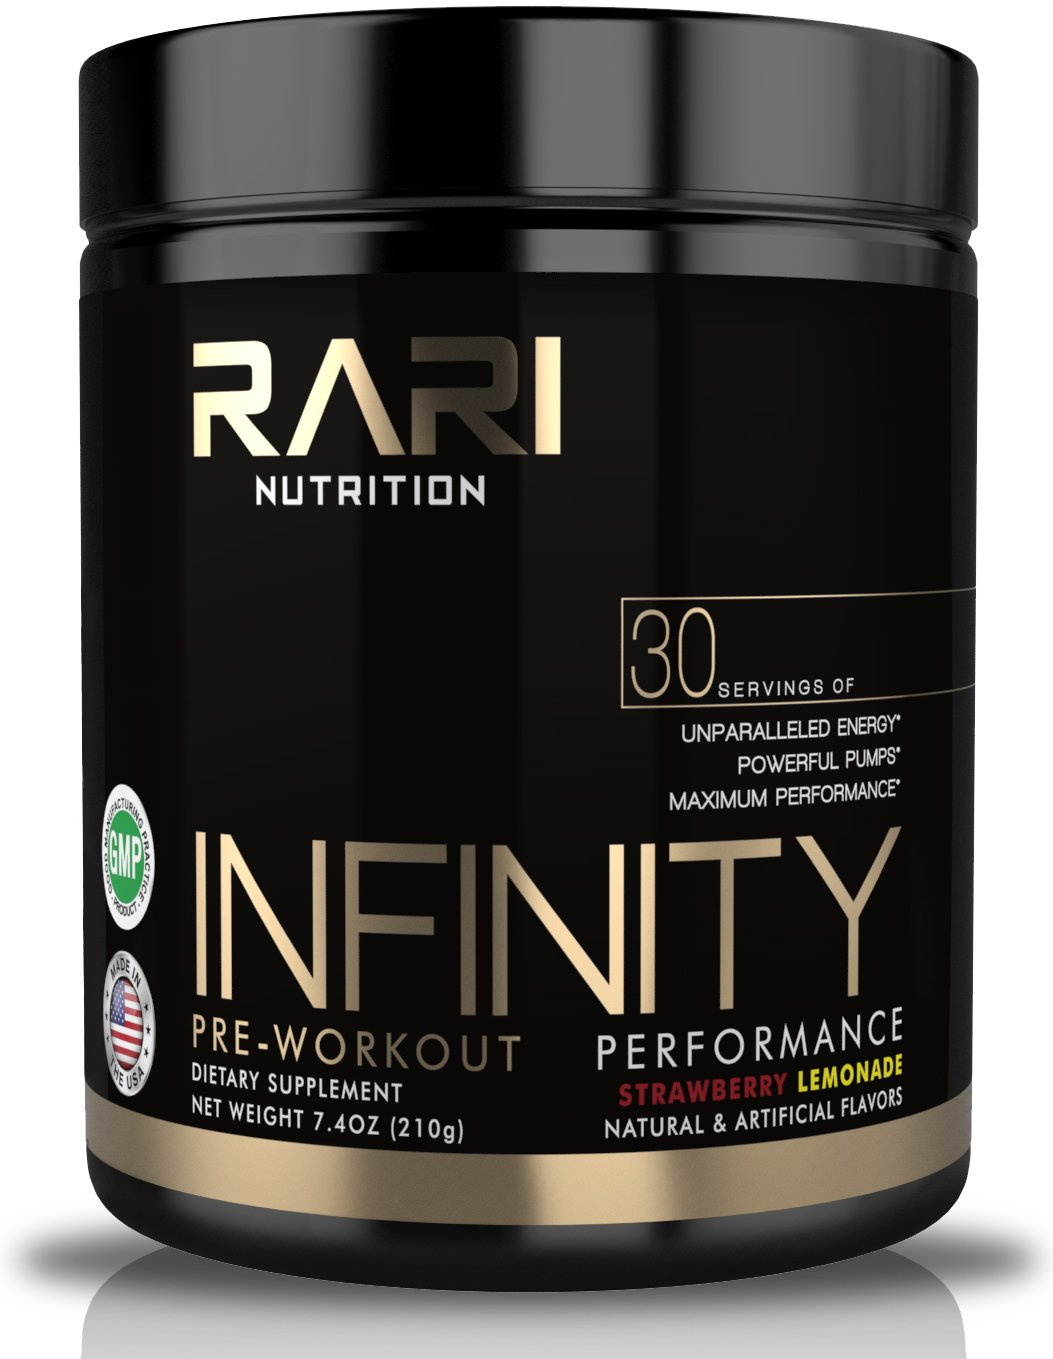 RARI Nutrition - INFINITY 3-in-1 Pre Workout Powder